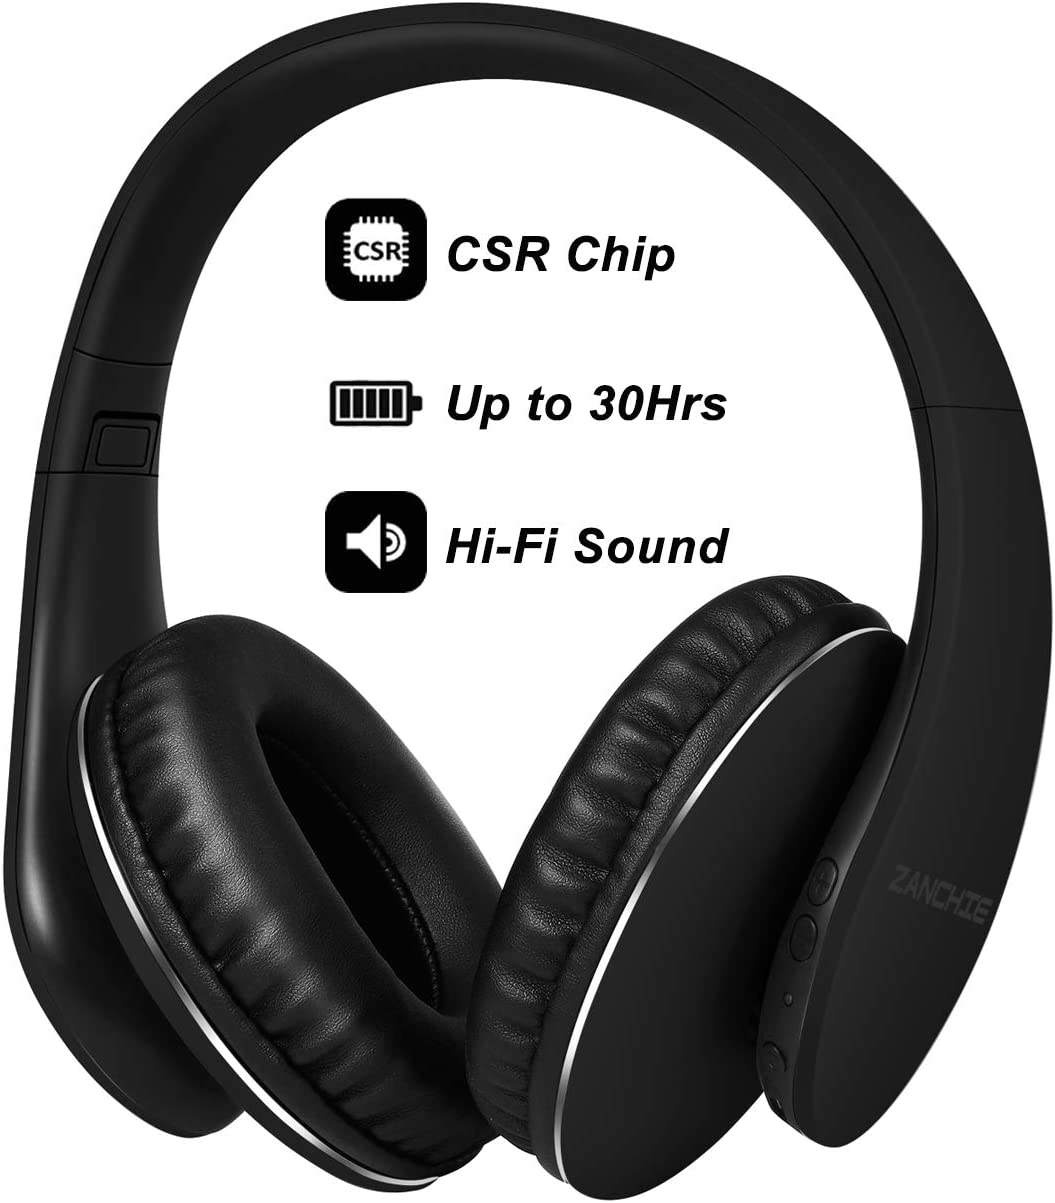 Bluetooth Headphones Over Ear, Hi Fi Stereo Wireless Headset, Foldable Soft Memory-Protein Earmuffs, 30Hrs Playtime, w Built-in Mic and Wired Mode for Cell Phones PC TV Girls Women Black